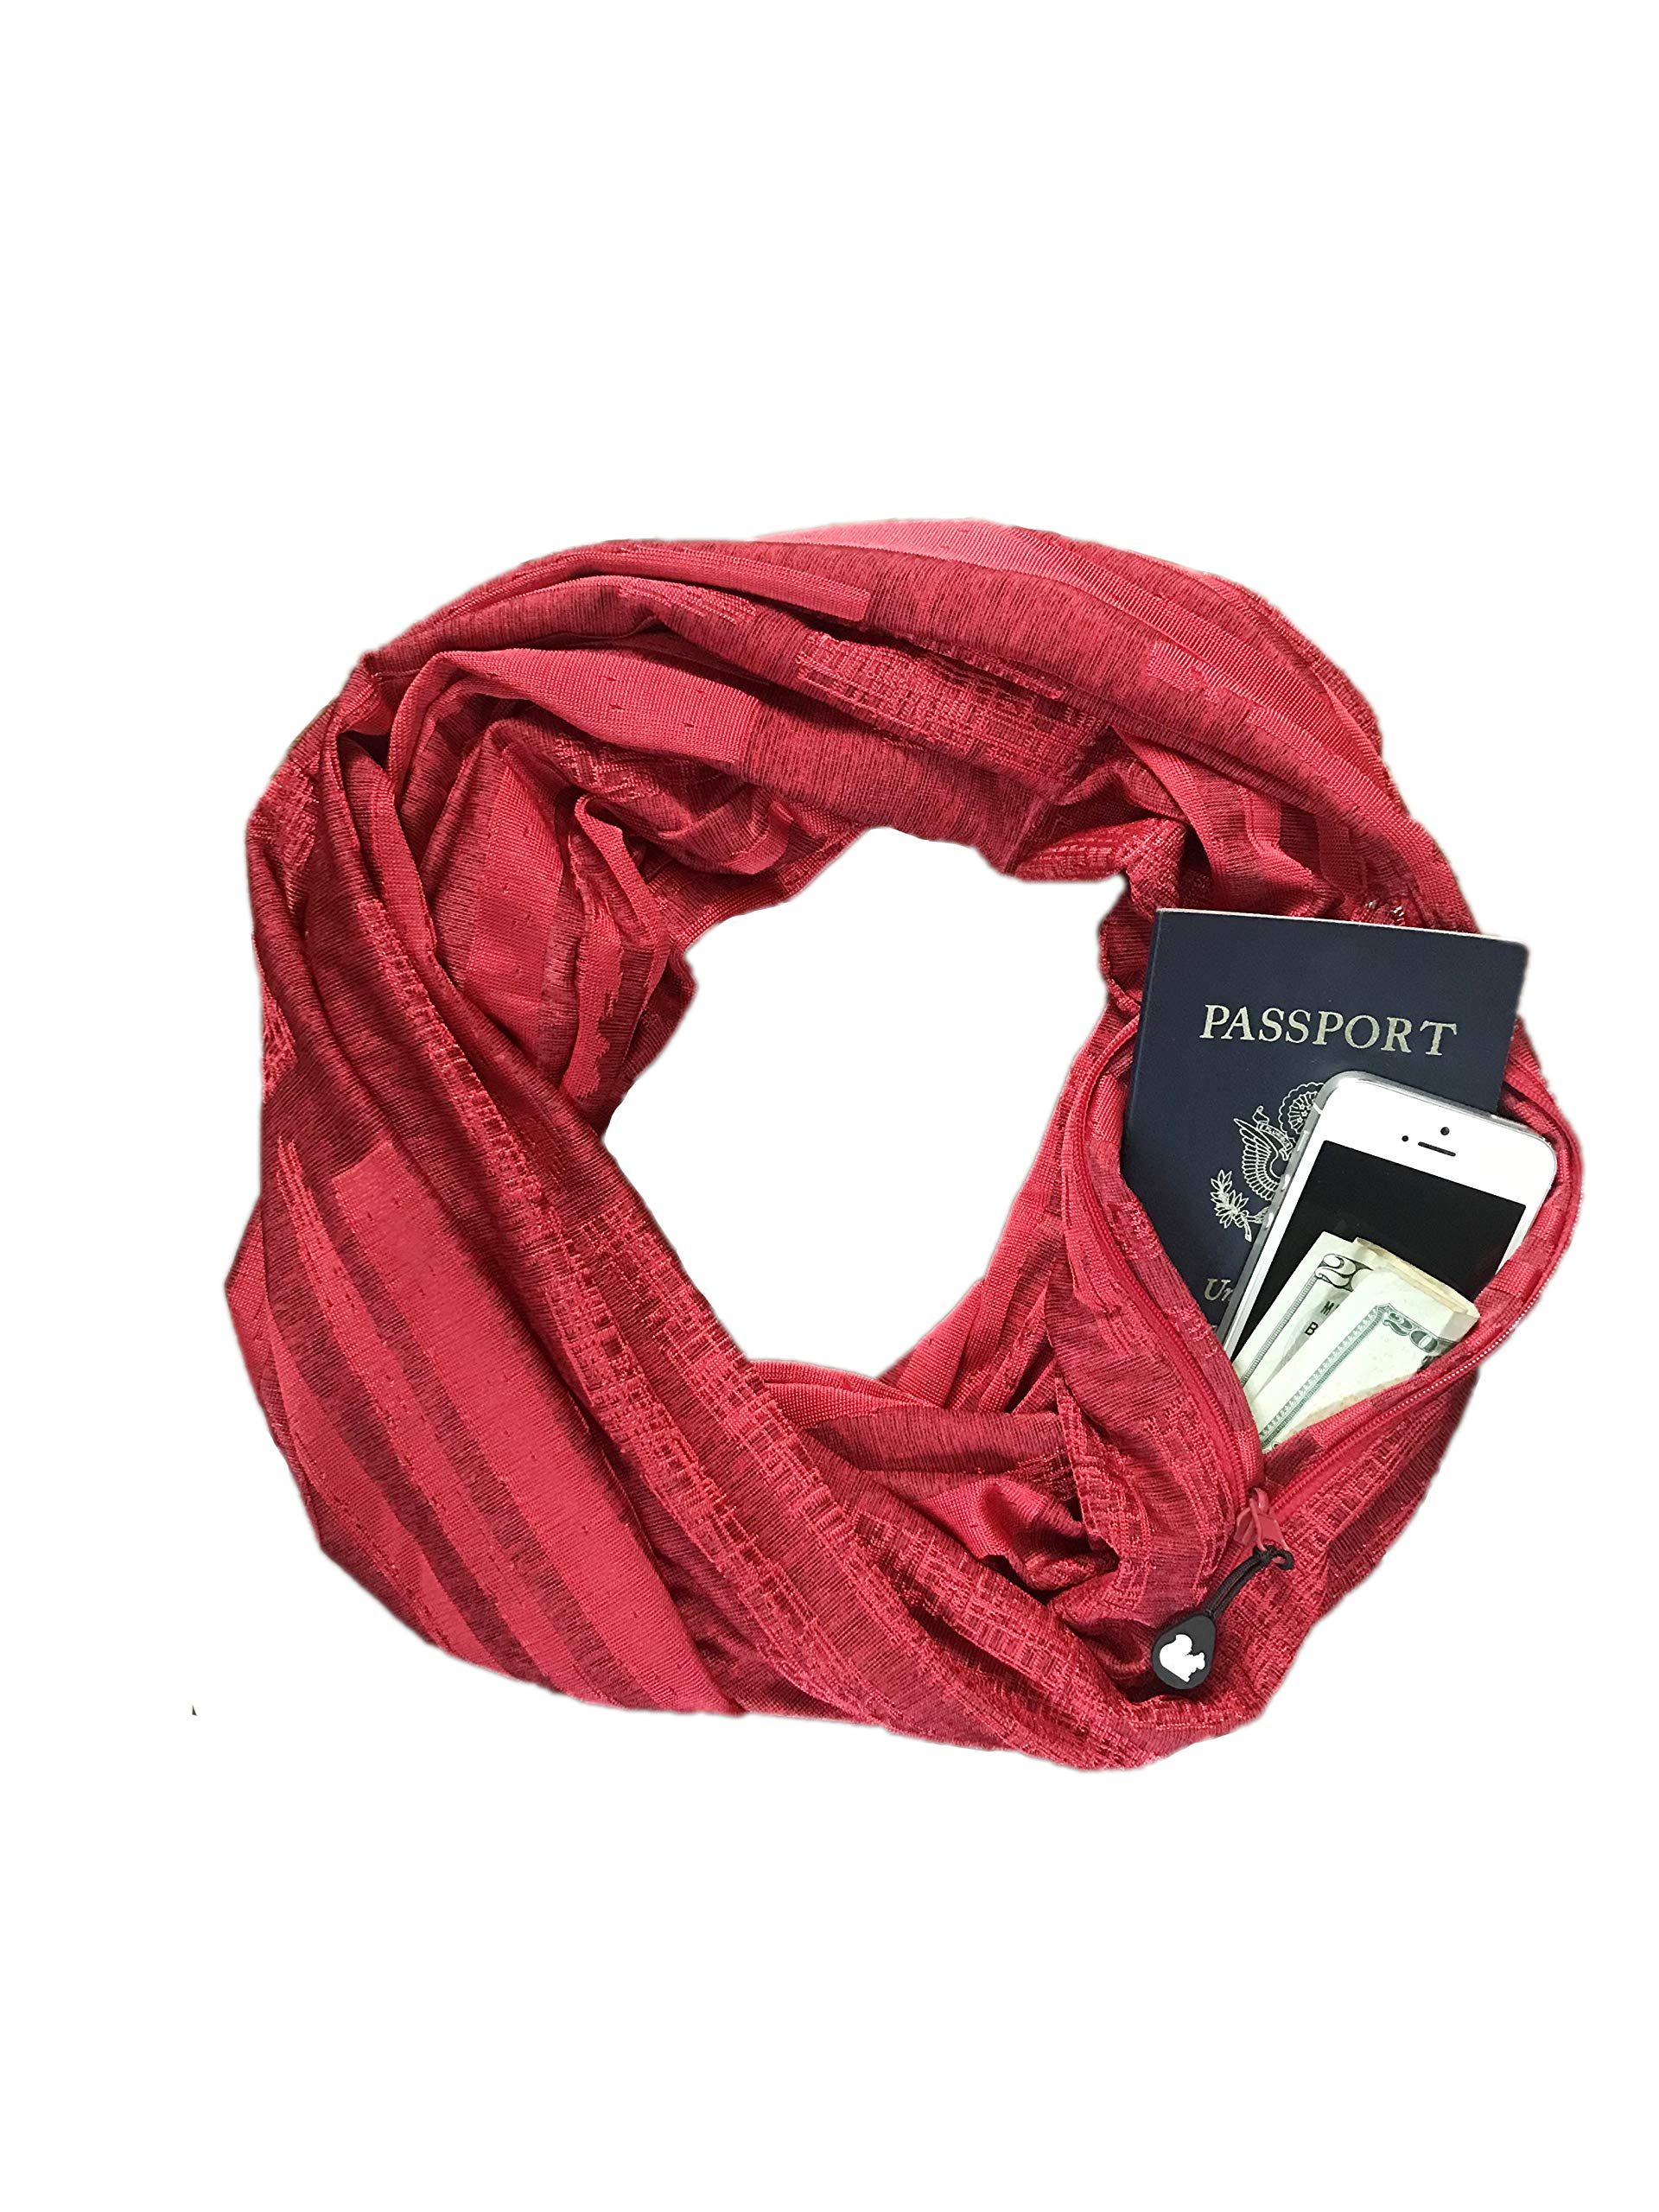 SHOLDIT - The Original Convertible Infinity Scarf with Pocket - New Collection, Vibe Red